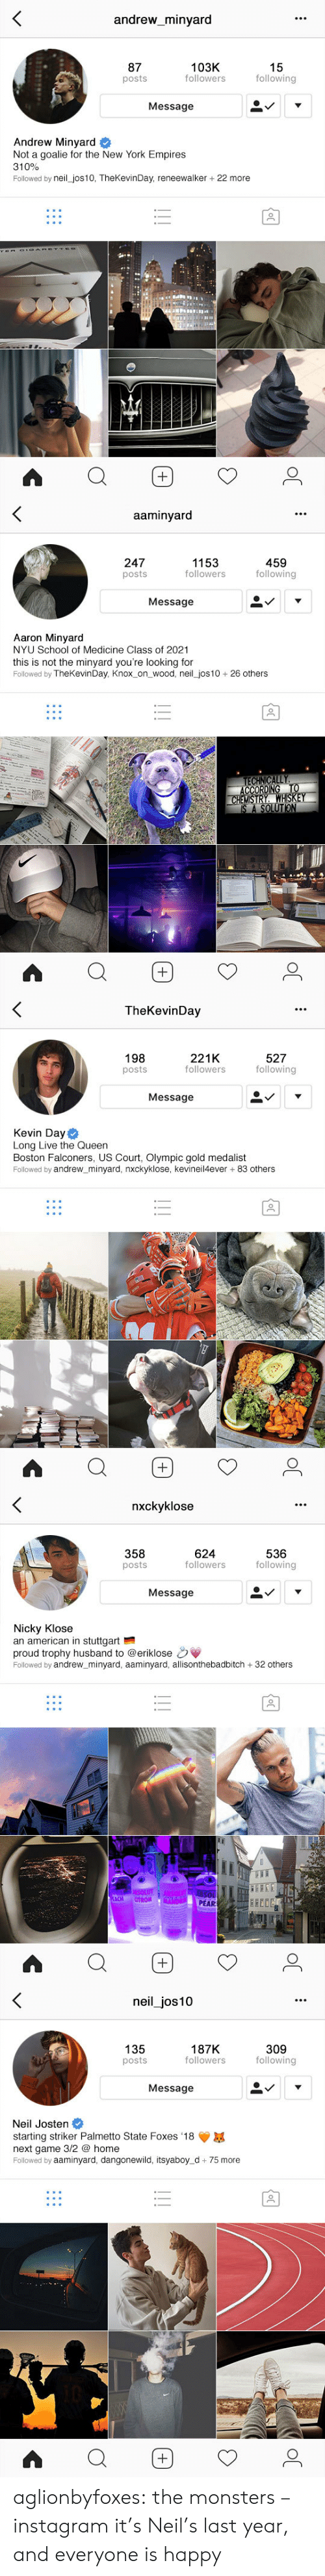 Instagram, New York, and School: andrew_minyard  87  posts  103K  followers  15  following  Message  Andrew Minyard #  Not a goalie for the New York Empires  310%  Followed by neil jos10, TheKevinDay, reneewalker + 22 more  ね   aaminyard  247  posts  1153  followers  459  following  Message  Aaron Minyard  NYU School of Medicine Class of 2021  this is not the minyard you're looking for  Followed by TheKevinDay, Knox_on_ wood, neil_jos10 26 others   TheKevinDav  198  posts  221K  followers  527  following  Message  Kevin Day  Long Live the Queen  Boston Falconers, US Court, Olympic gold medalist  Followed by andrew_minyard, nxckyklose, kevineil4ever + 83 others   nxckvklose  358  posts  624  followers  536  following  Message  Nicky Klose  an american in stuttgart  proud trophy husband to @eriklose  Followed by andrew_minyard, aaminyard, allisonthebadbitch 32 others  PEAR  EEEDE   neil_jos10  135  posts  187K  followers  309  following  Message  Neil Josten #  starting striker Palmetto State Foxes '18  next game 3/2 @ home  Followed by aaminyard, dangonewild, itsyaboy_d 75 more aglionbyfoxes: the monsters – instagram it's Neil's last year, and everyone is happy